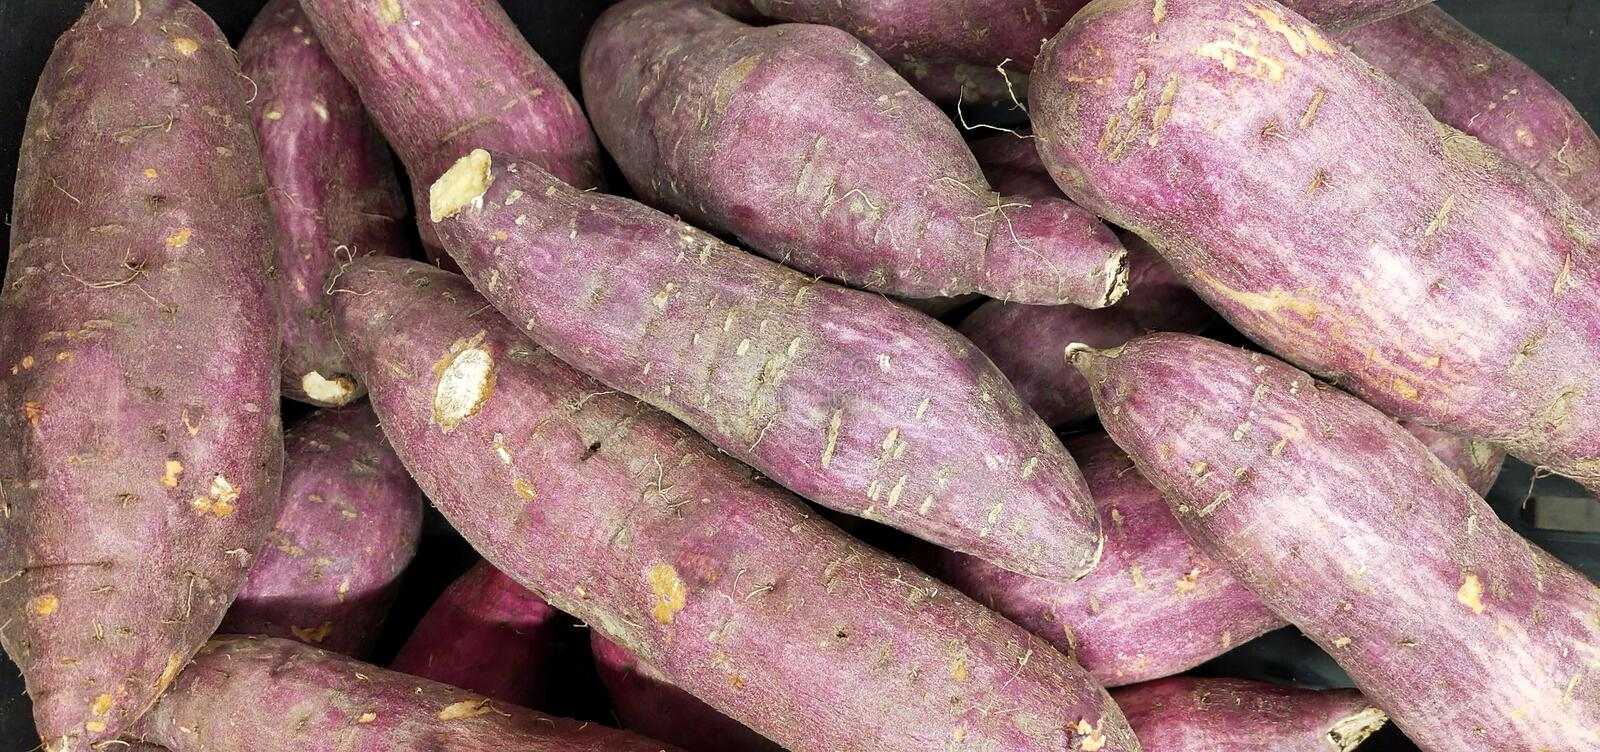 Bunch of sweet potatoes royalty free stock image